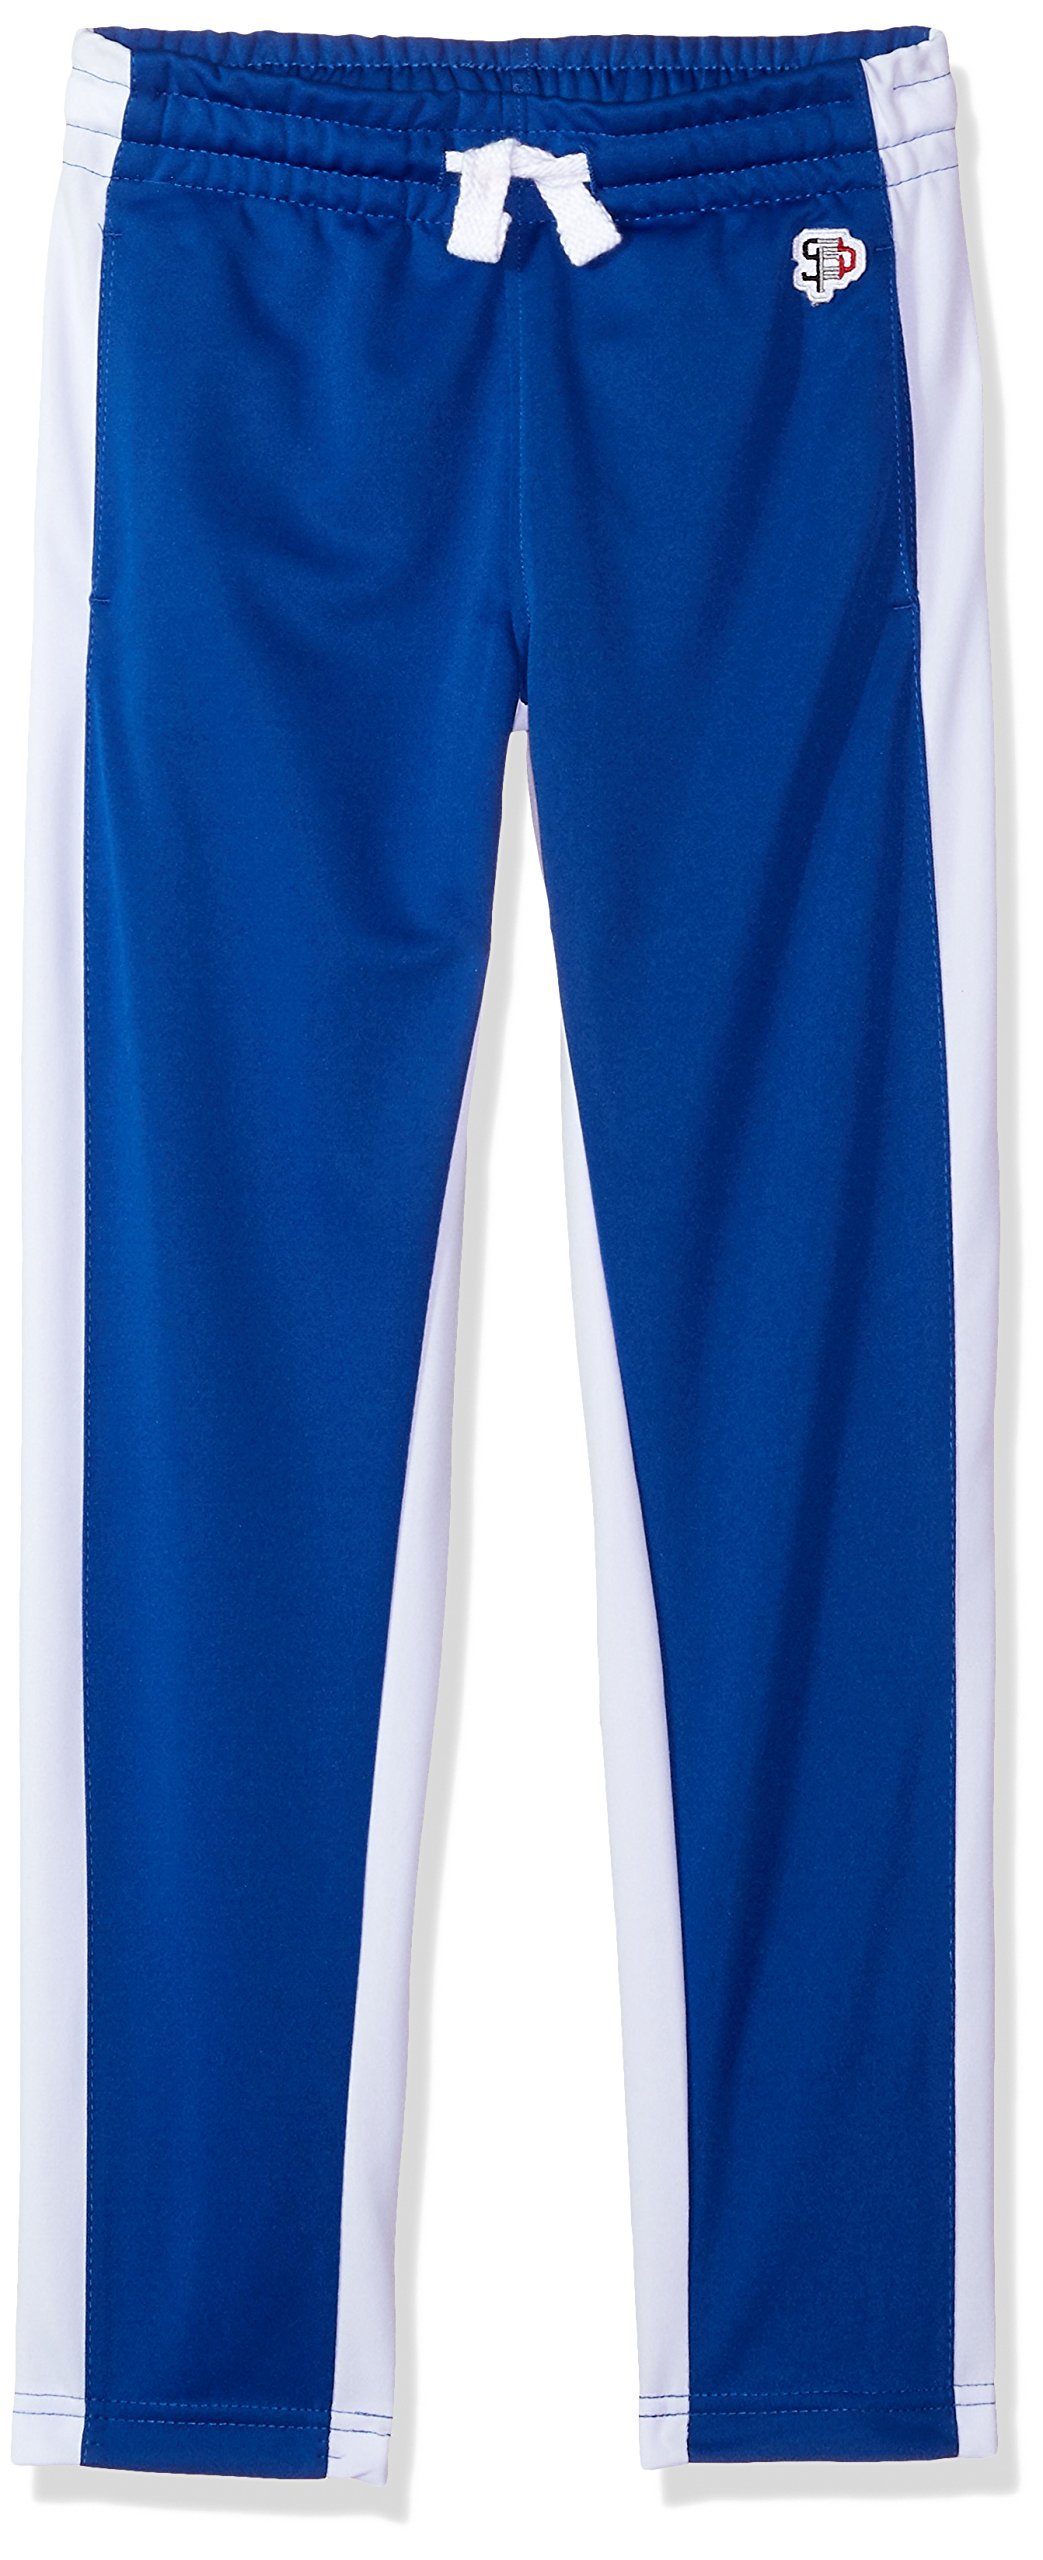 Southpole Boys' Big Athletic Track Pants Open Bottom, Royal, X-Large